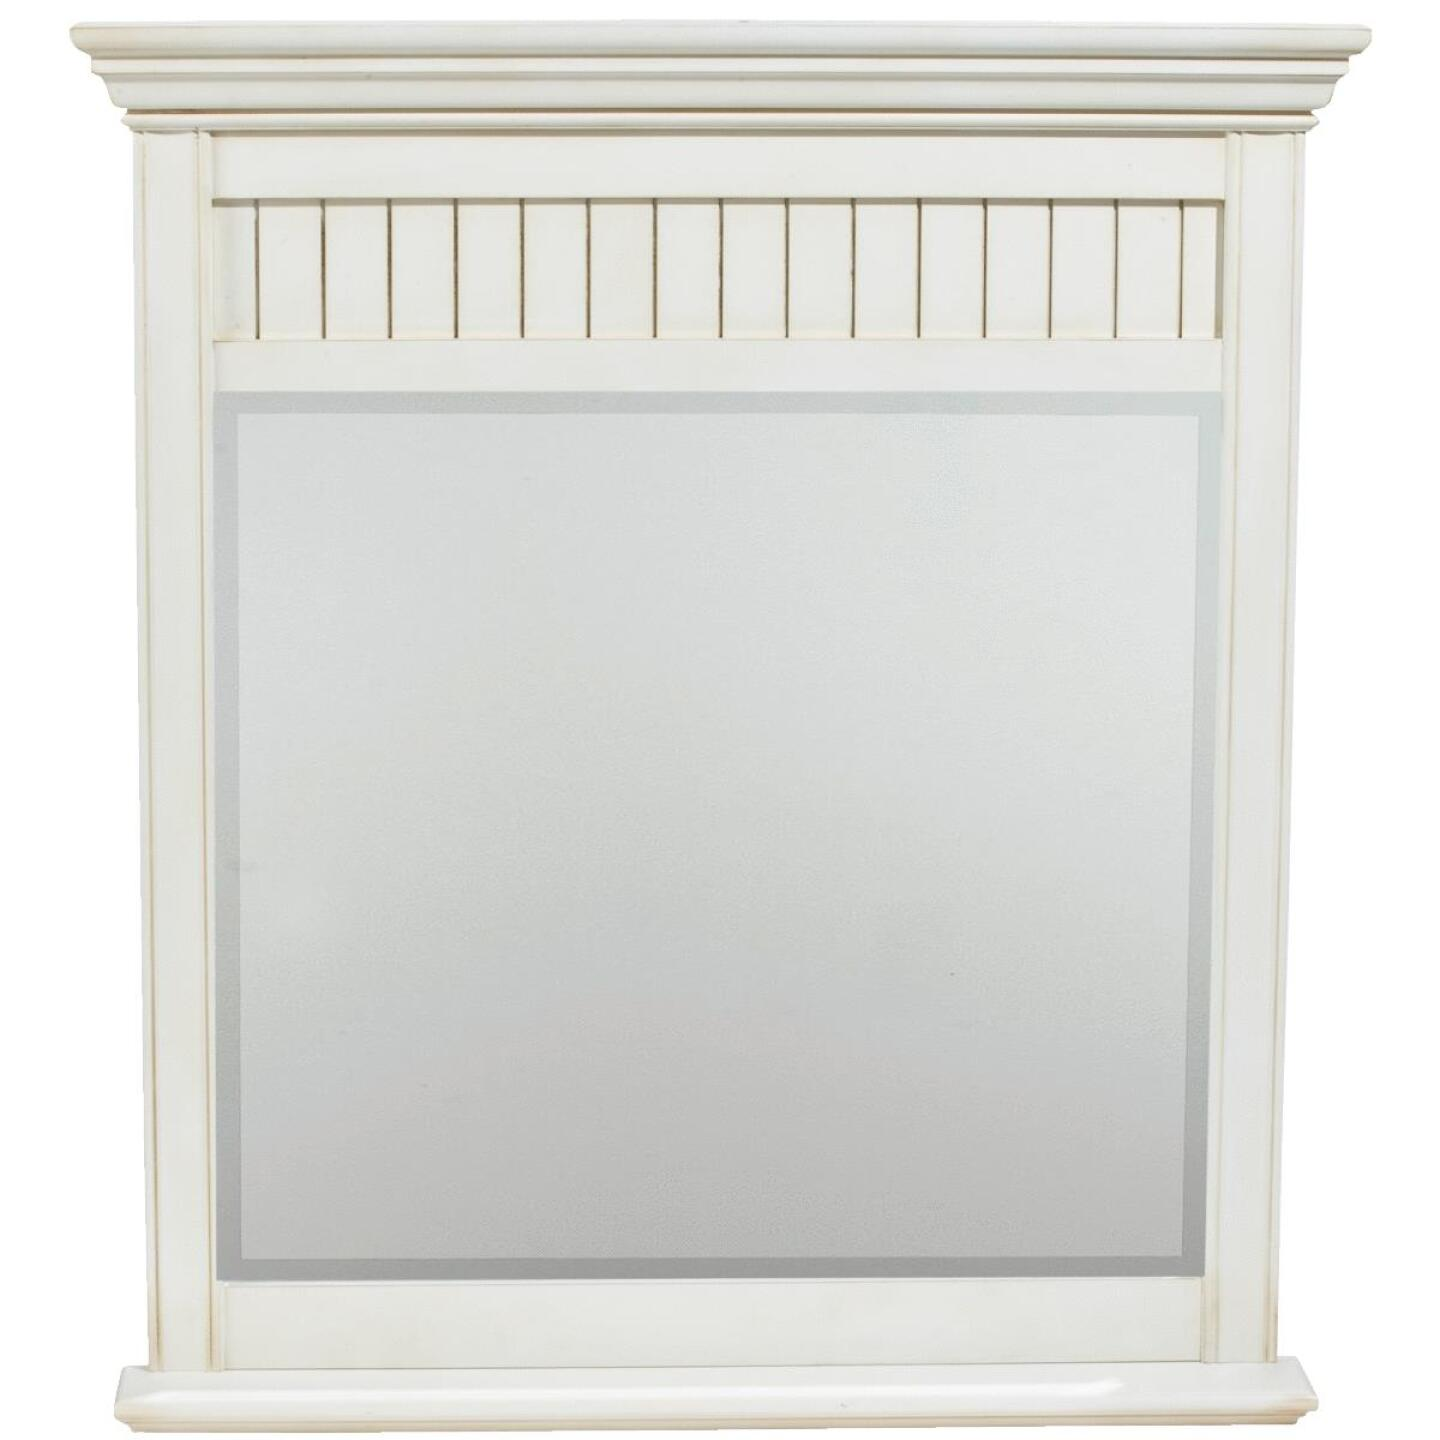 Sunny Wood Bristol Beach White 36 In. W. X 40 In. H. Vanity Mirror Image 1